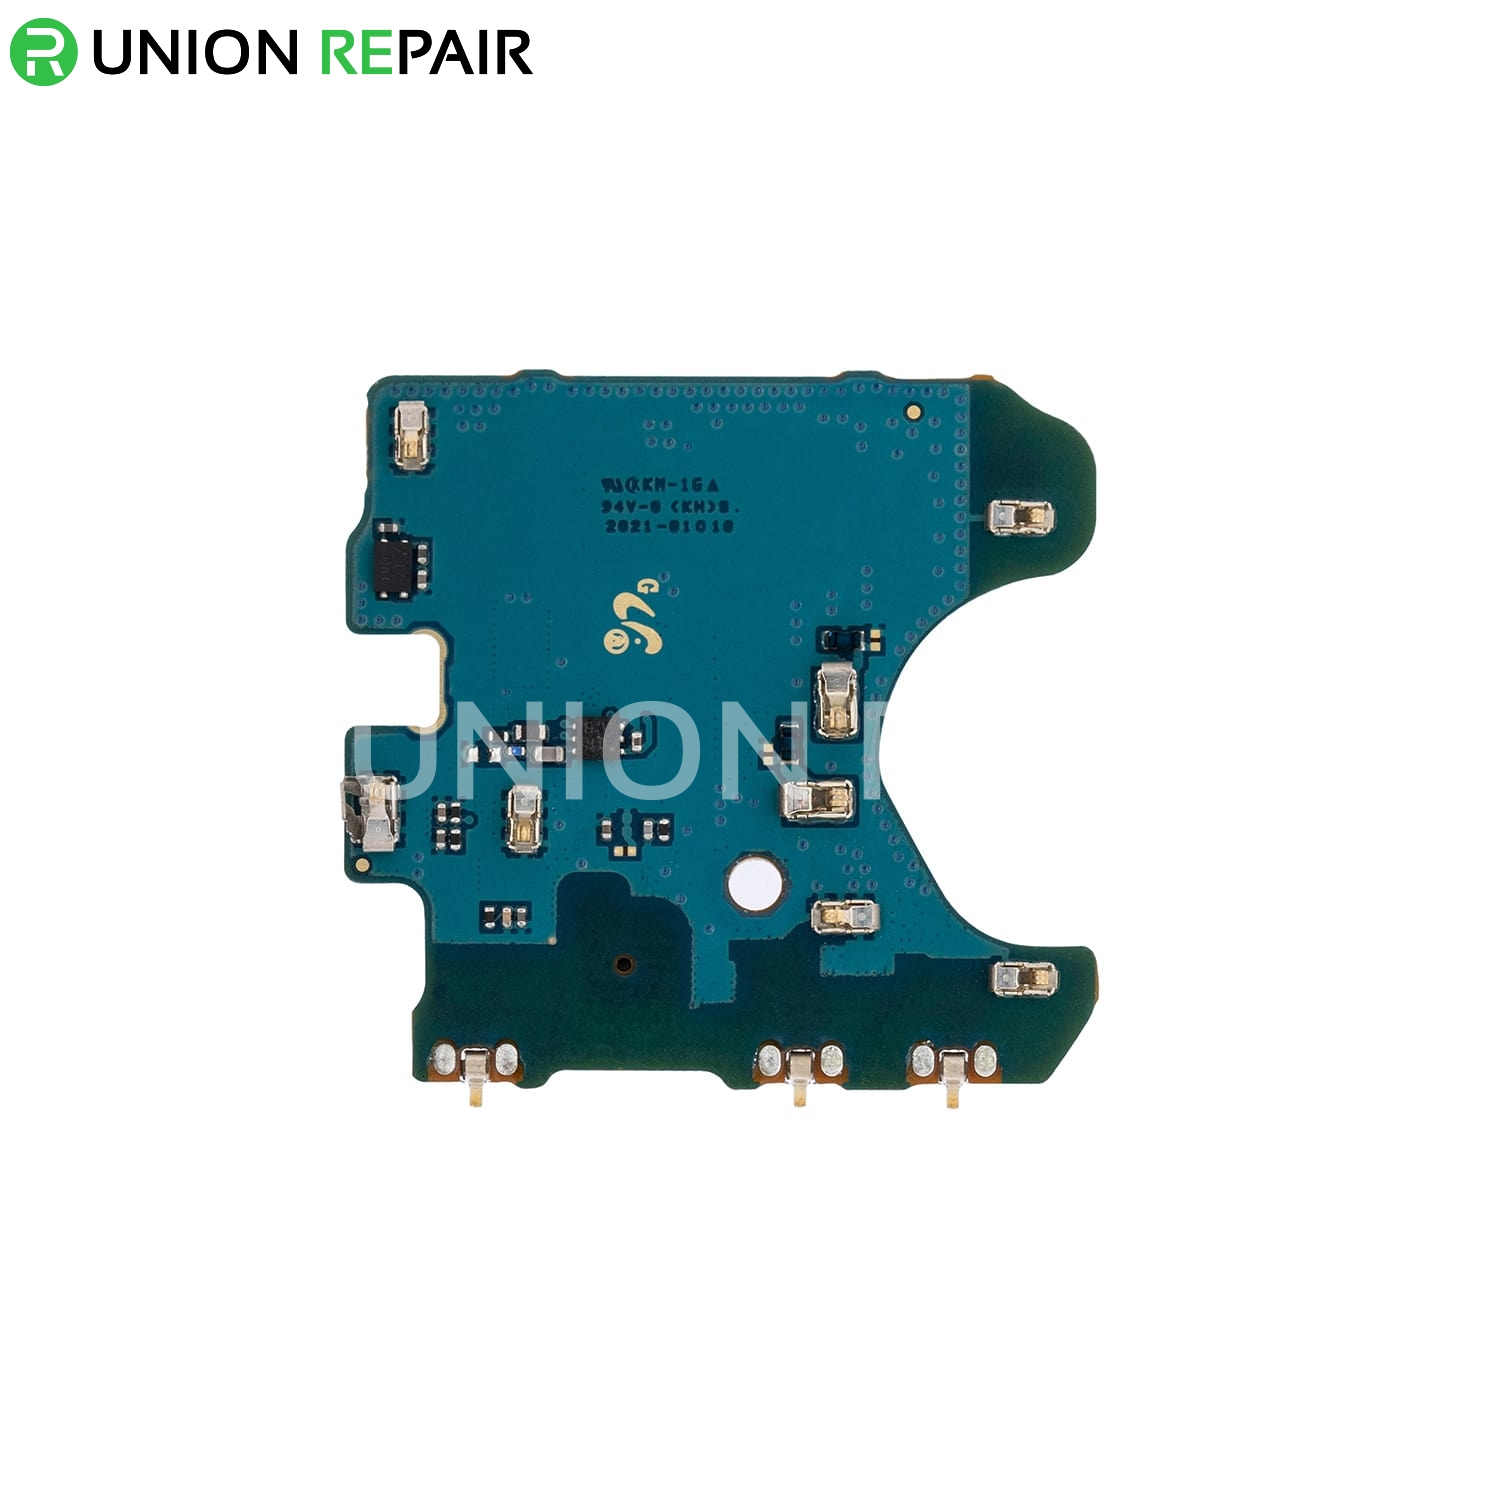 Replacement for Samsung Galaxy Note 20 SM-N981B Microphone PCB Board